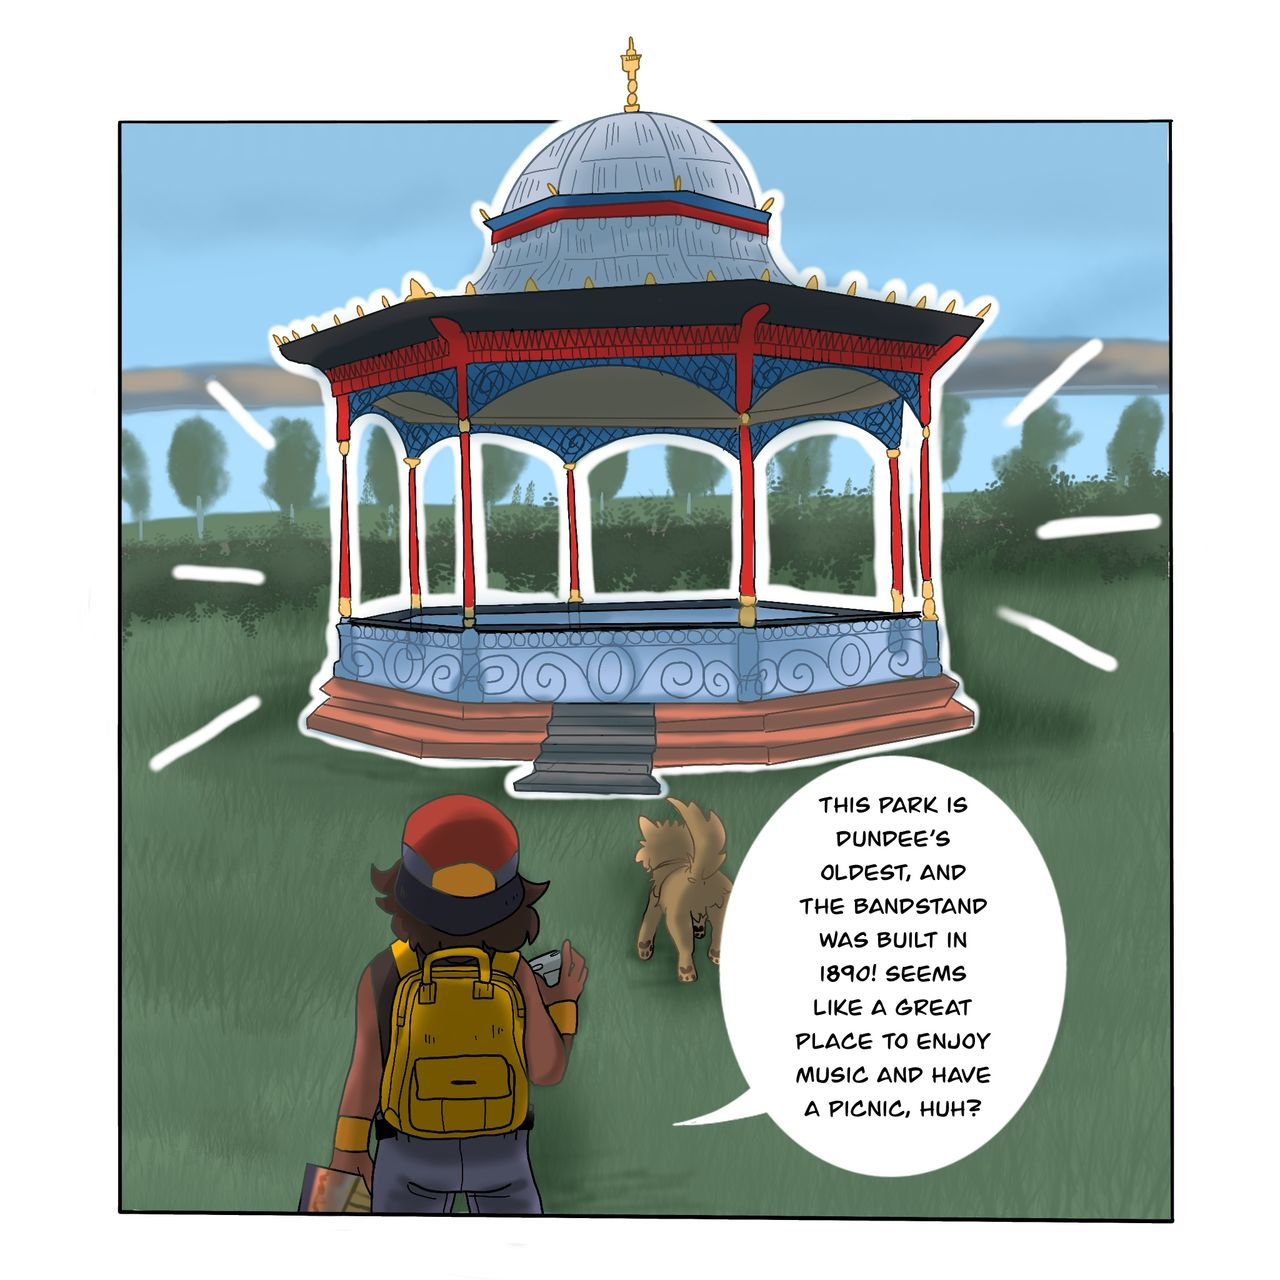 This webcomic panel shows the two characters looking at the bandstand in Magdalen Green, admiring it.